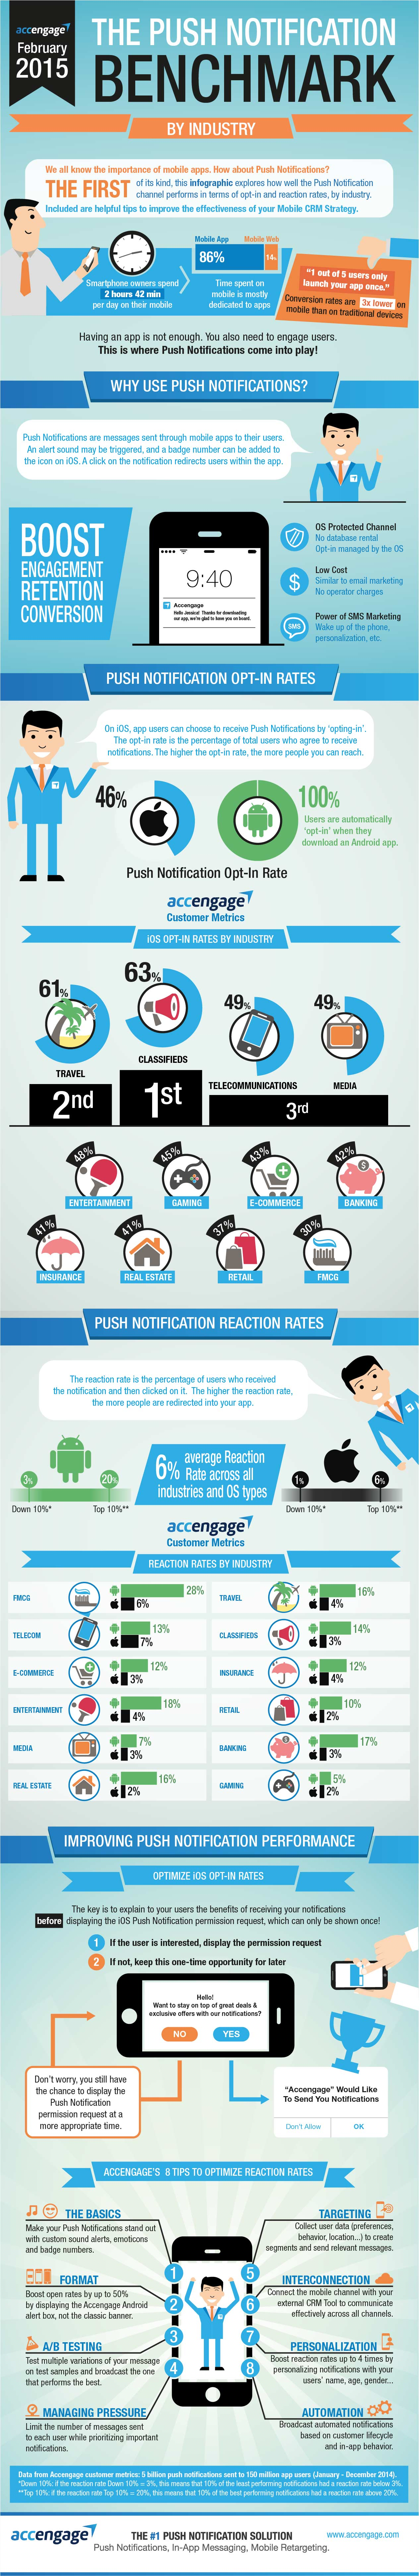 Infographic: Push Notifications Average Six per cent Reaction Rate